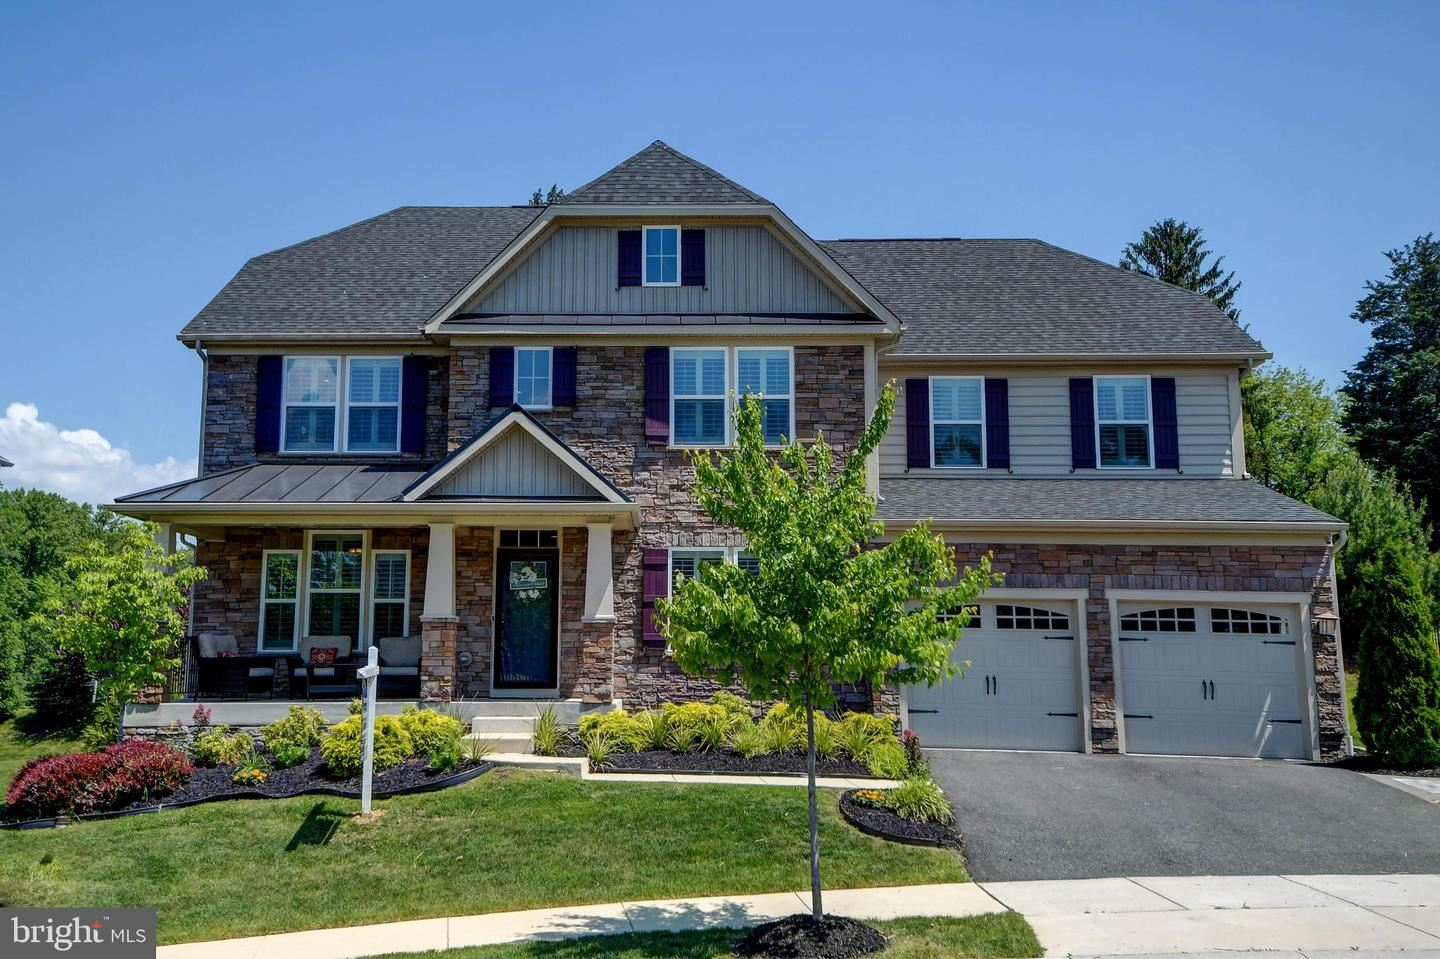 4204 PERRY RIVER RD, Perry Hall, MD 21128 - MLS#: MDBC528570